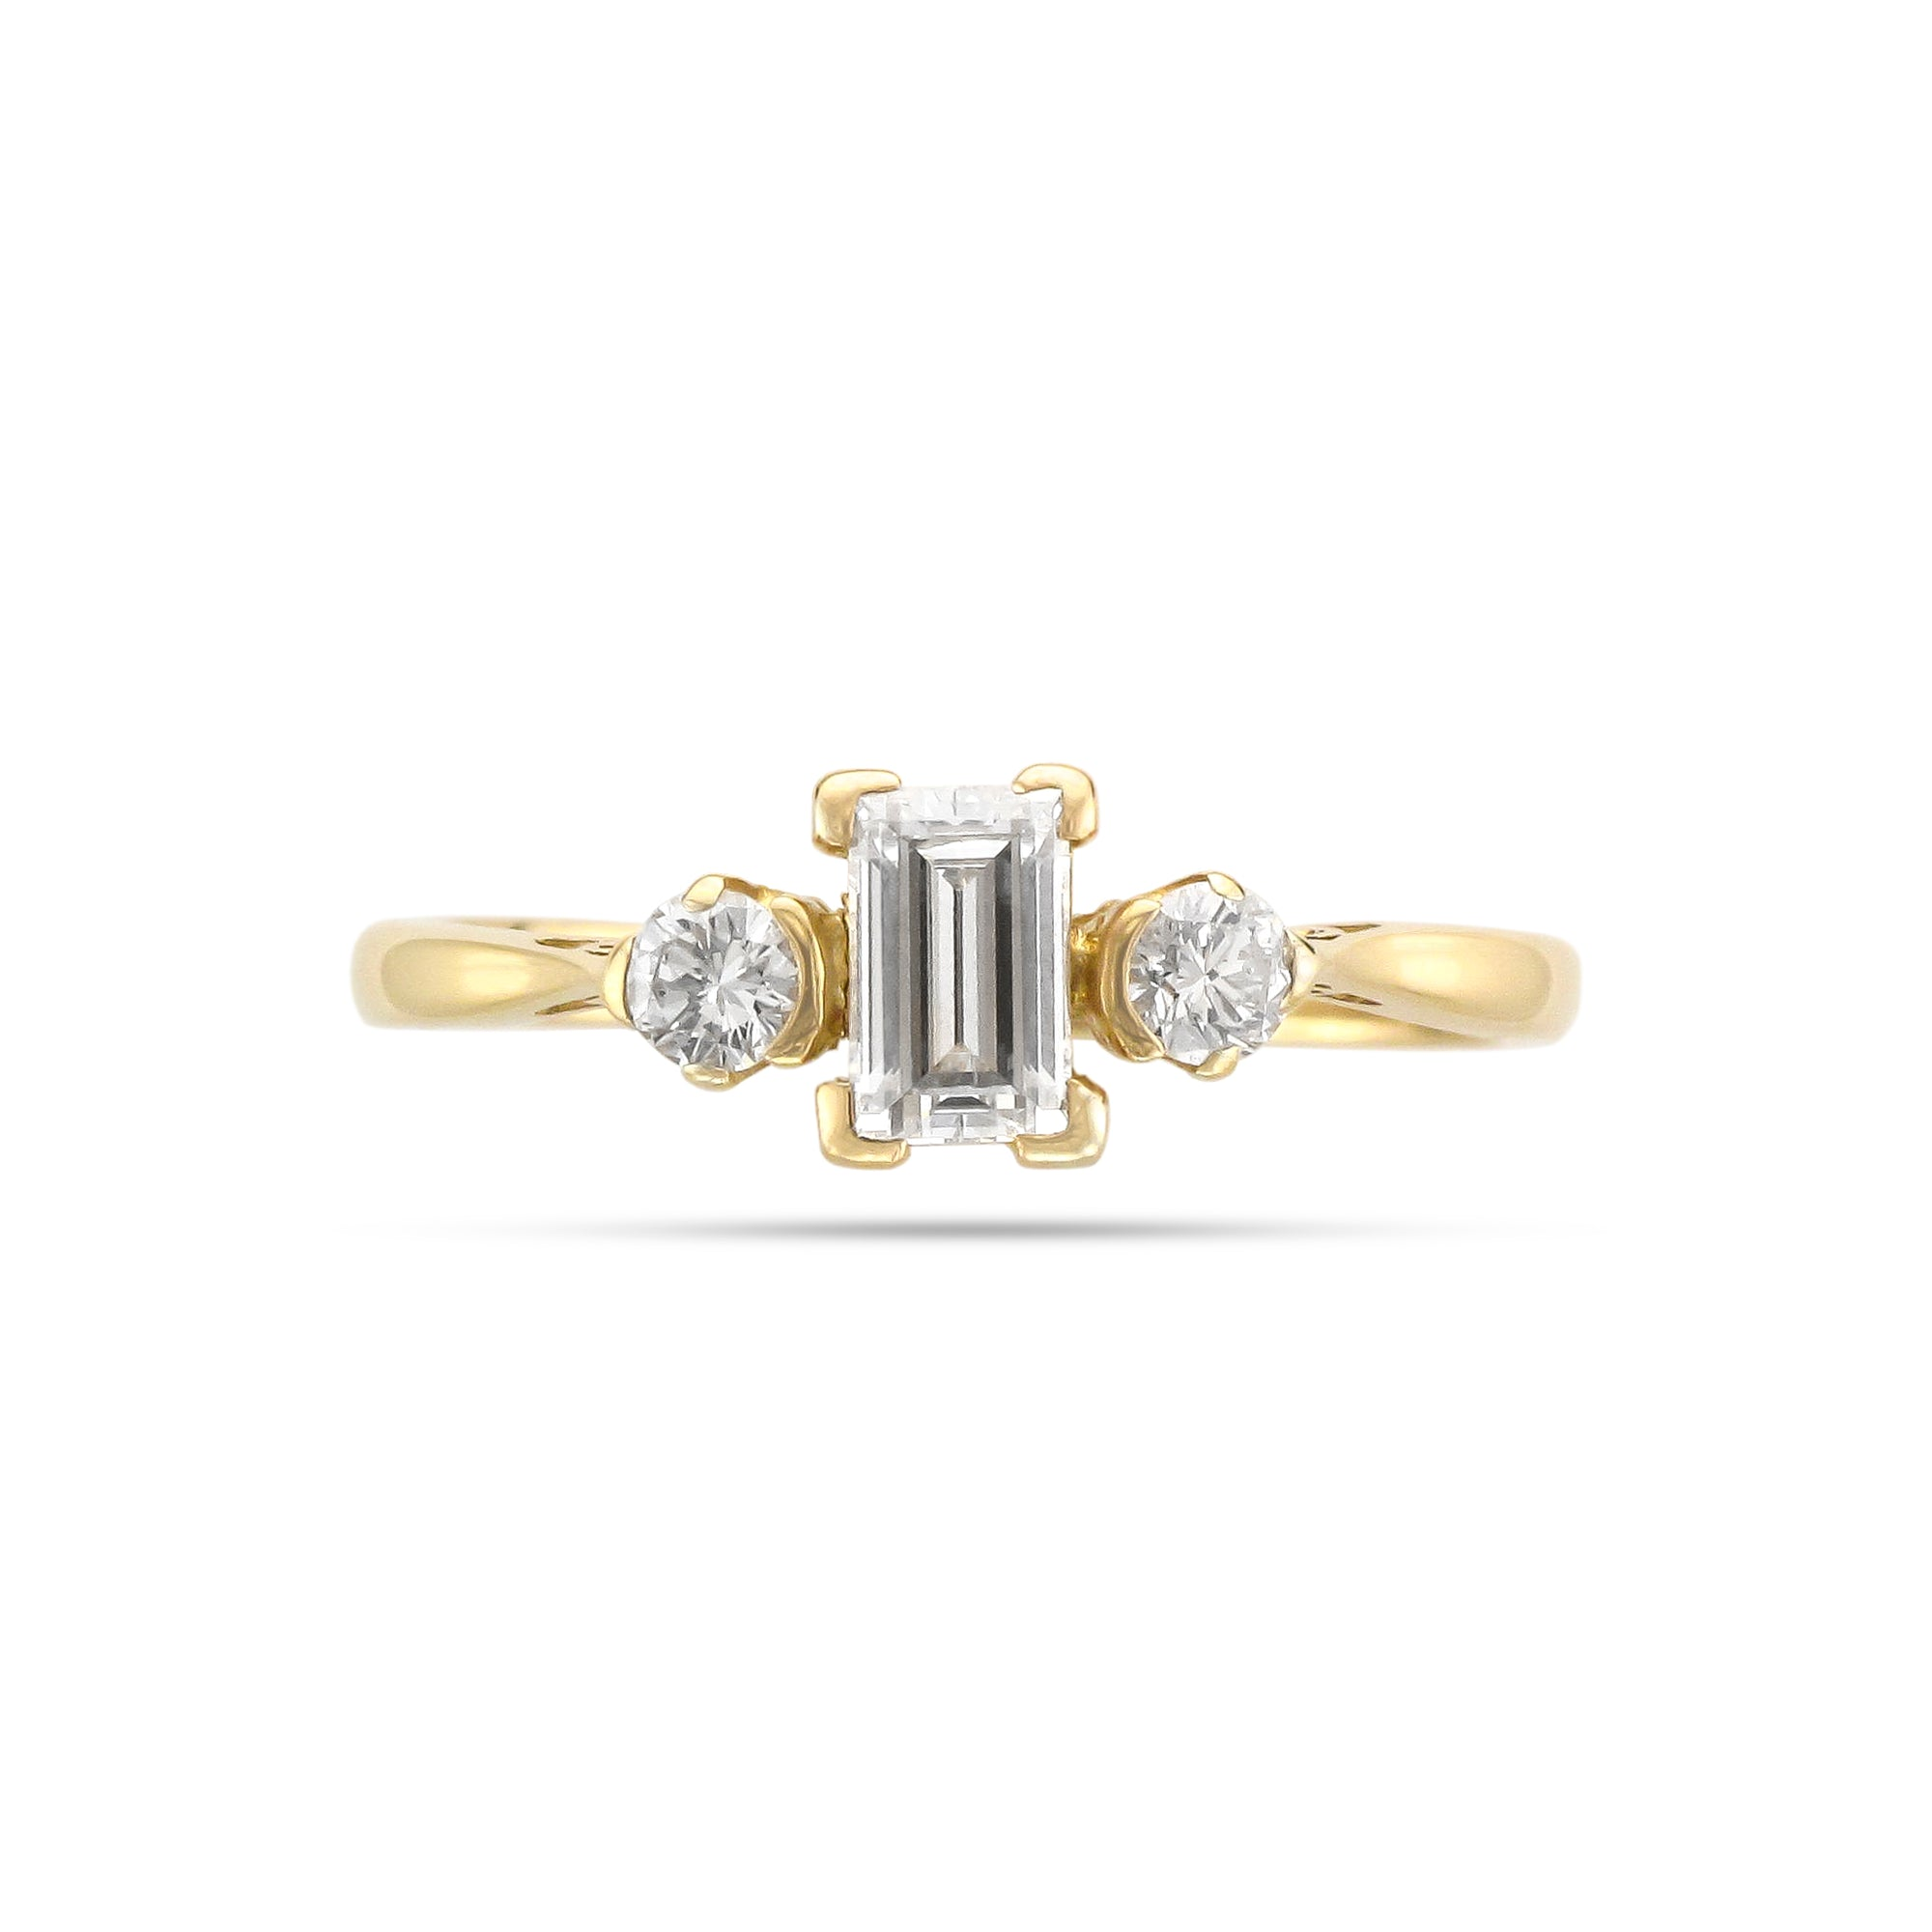 Vintage 18ct Yellow Gold Three Stone Diamond Ring